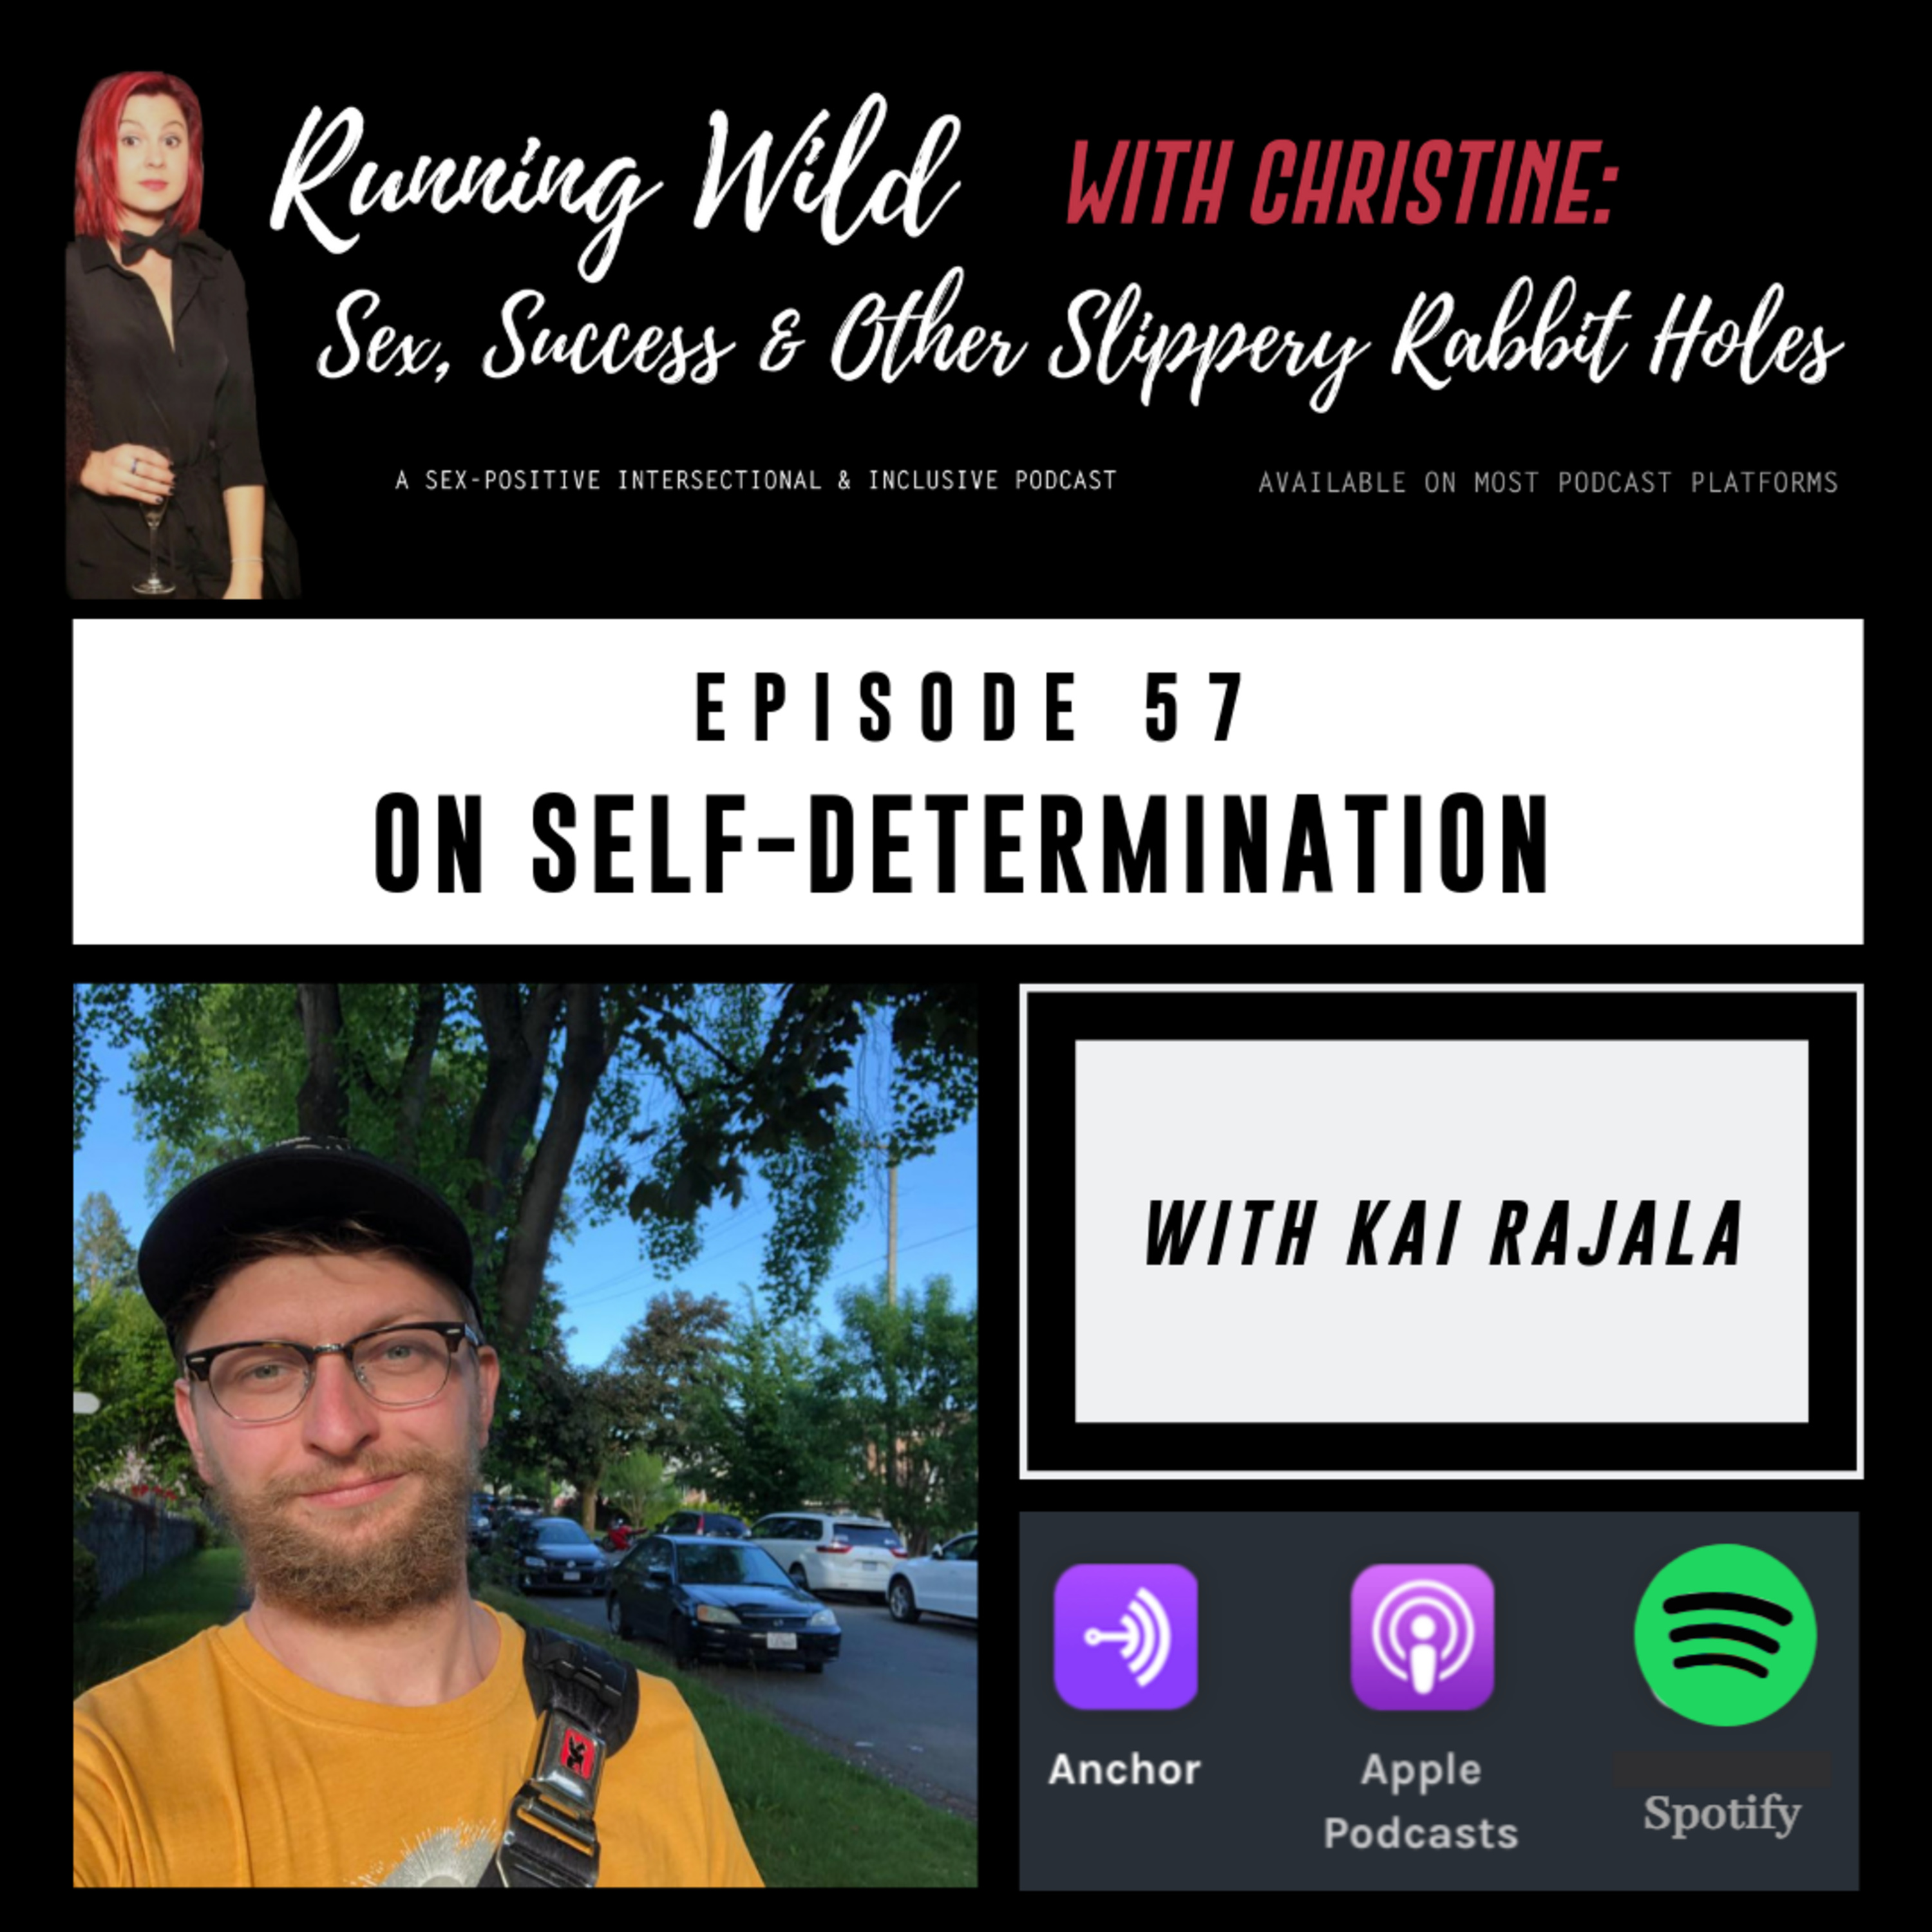 Ep 57: About Self-Determination, with Kai Rajala